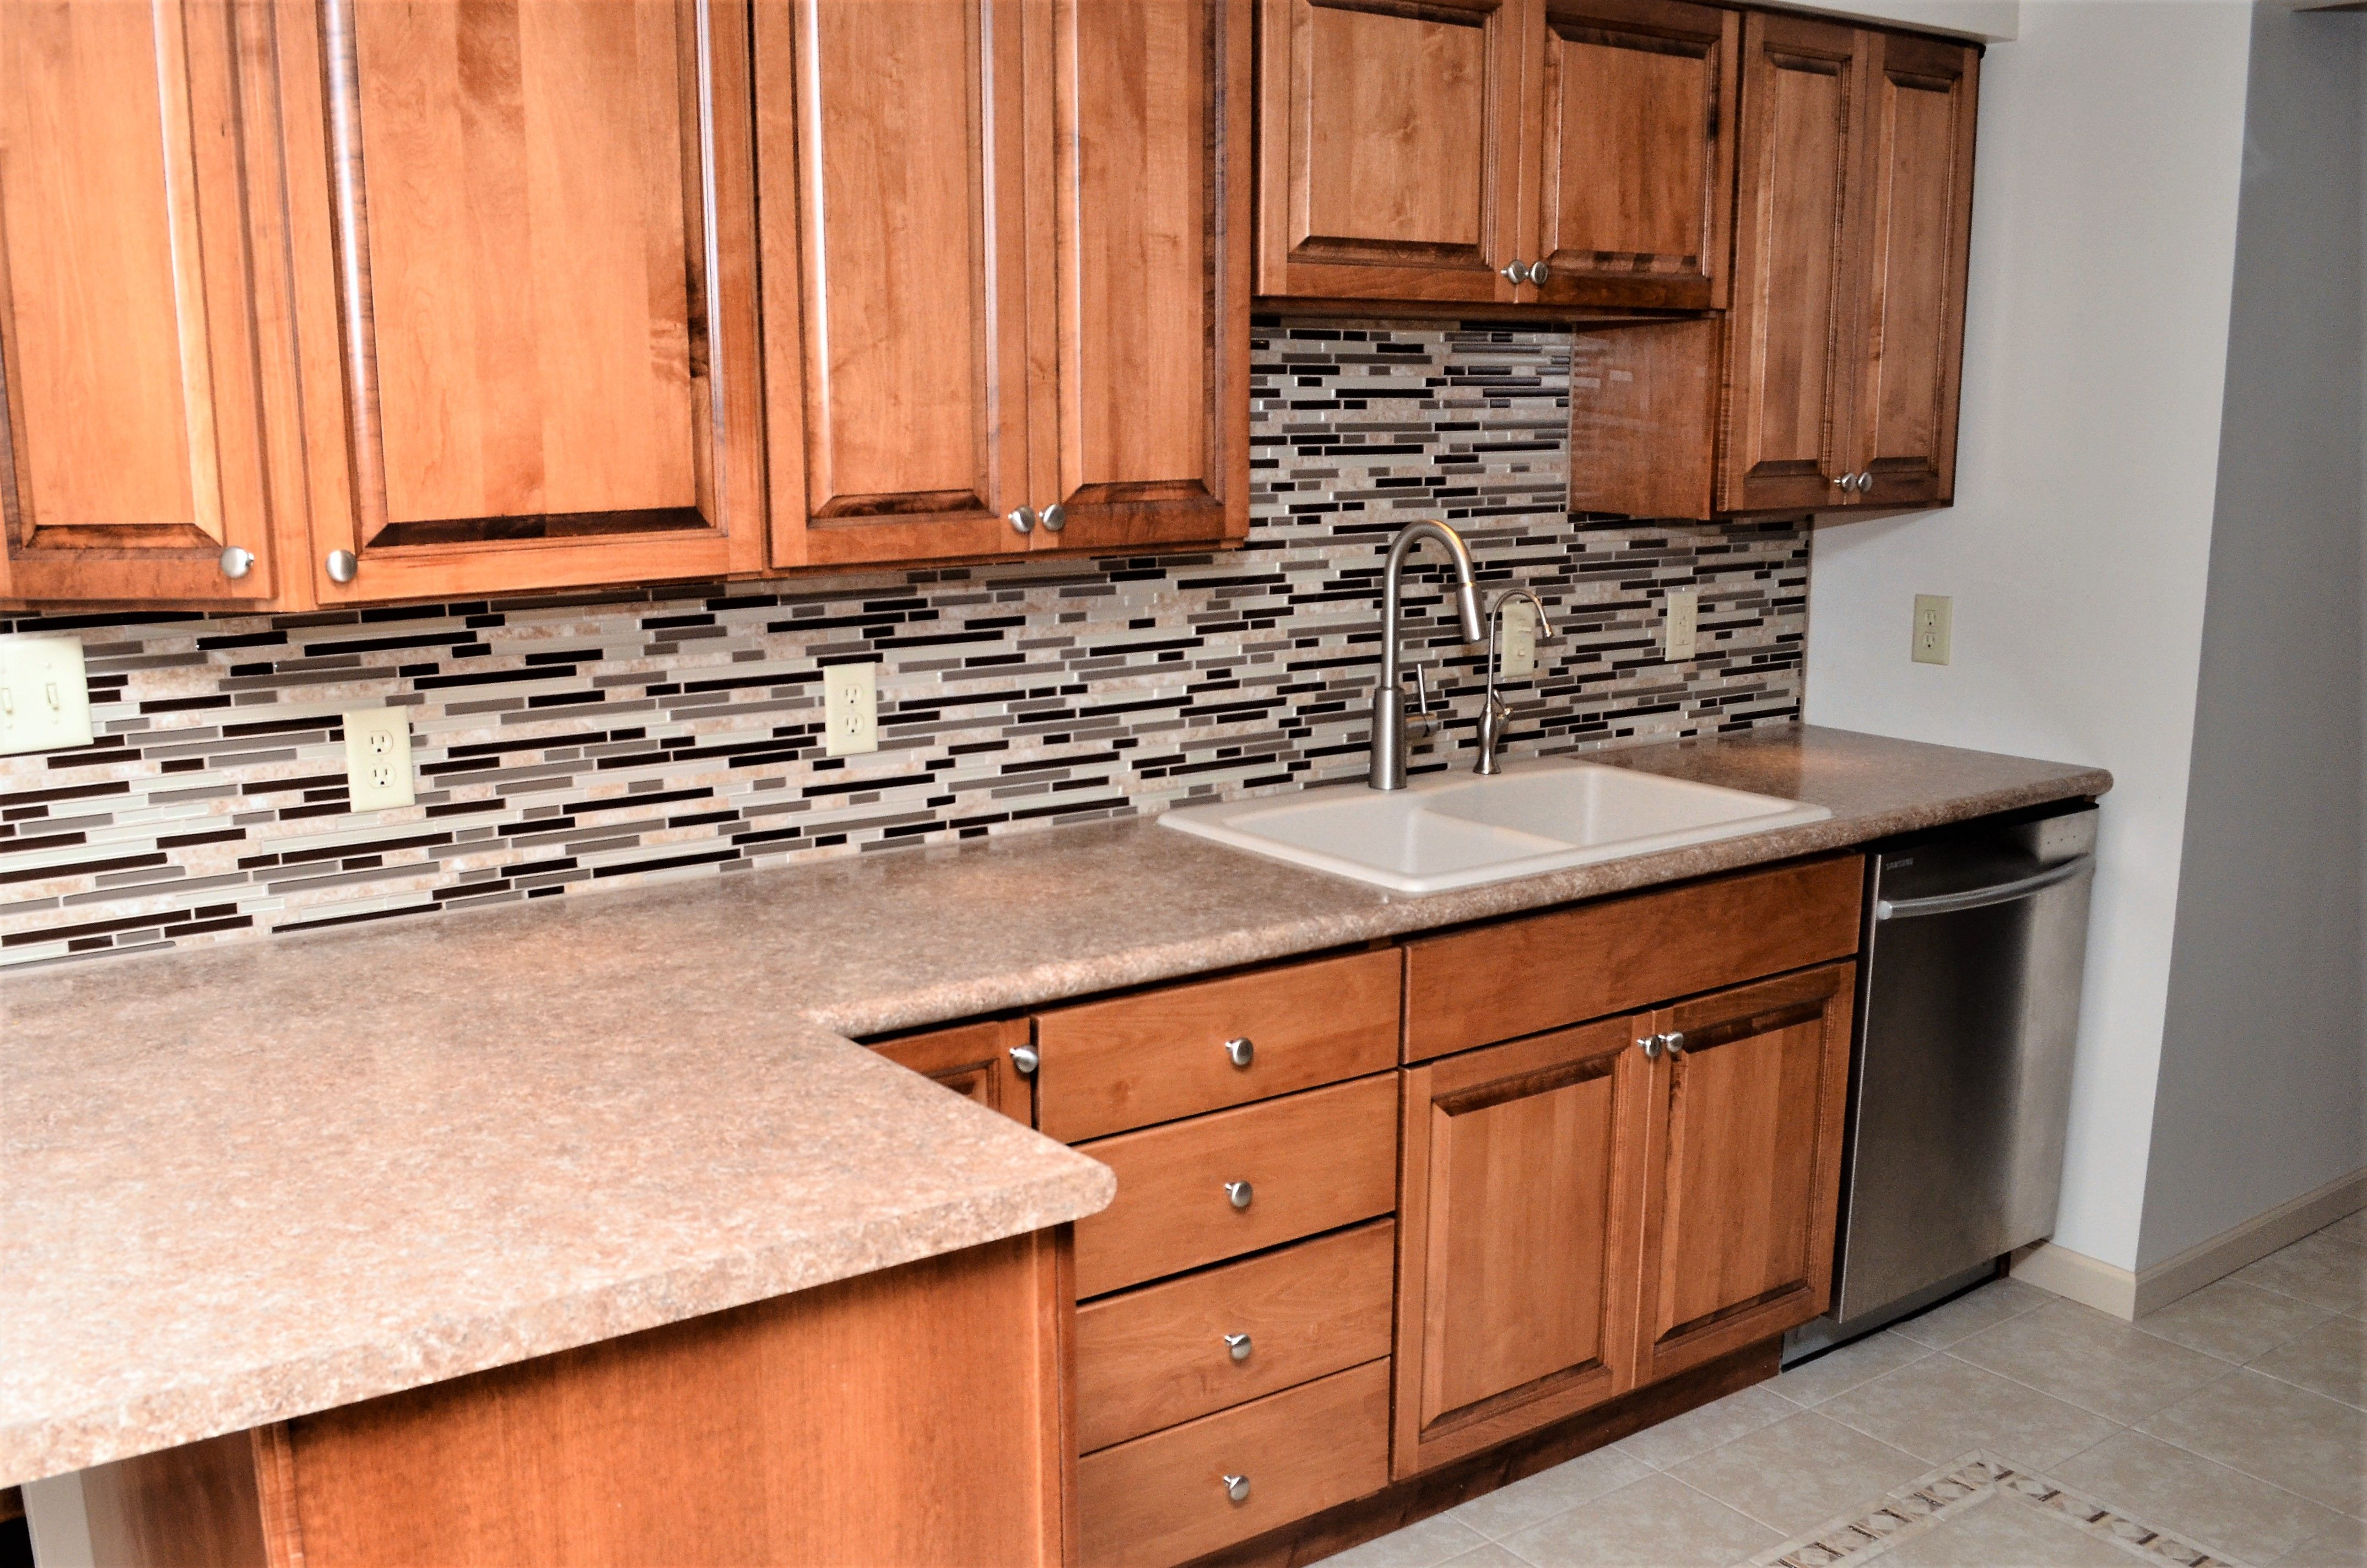 Haas Lifestyle Upland Maple Pecan Kitchen Cabinets Kitchen Cabinetry